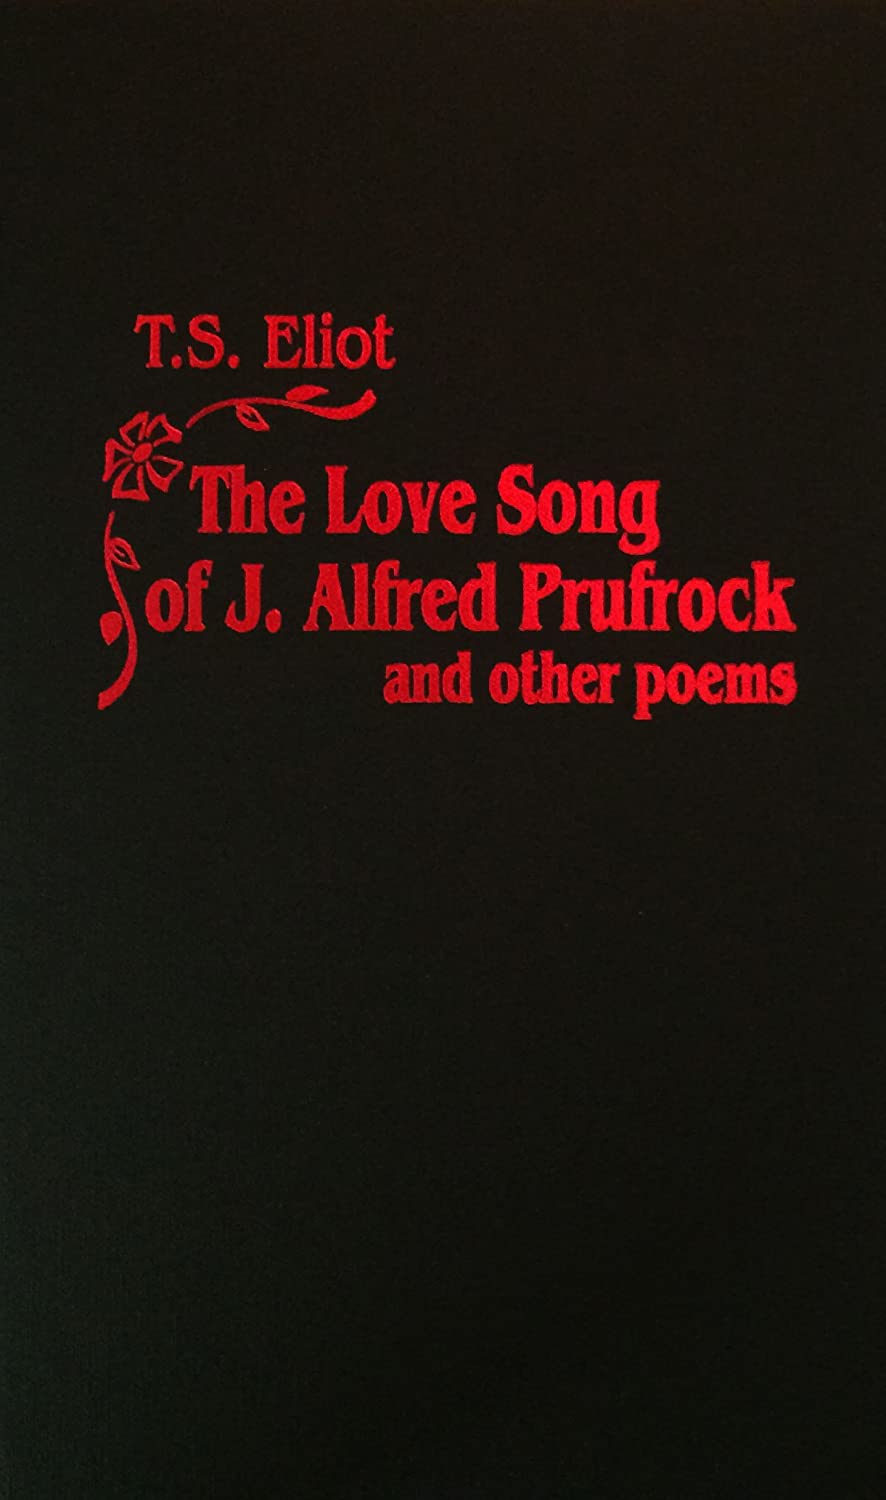 critical essay on the love song of j. alfred prufrock